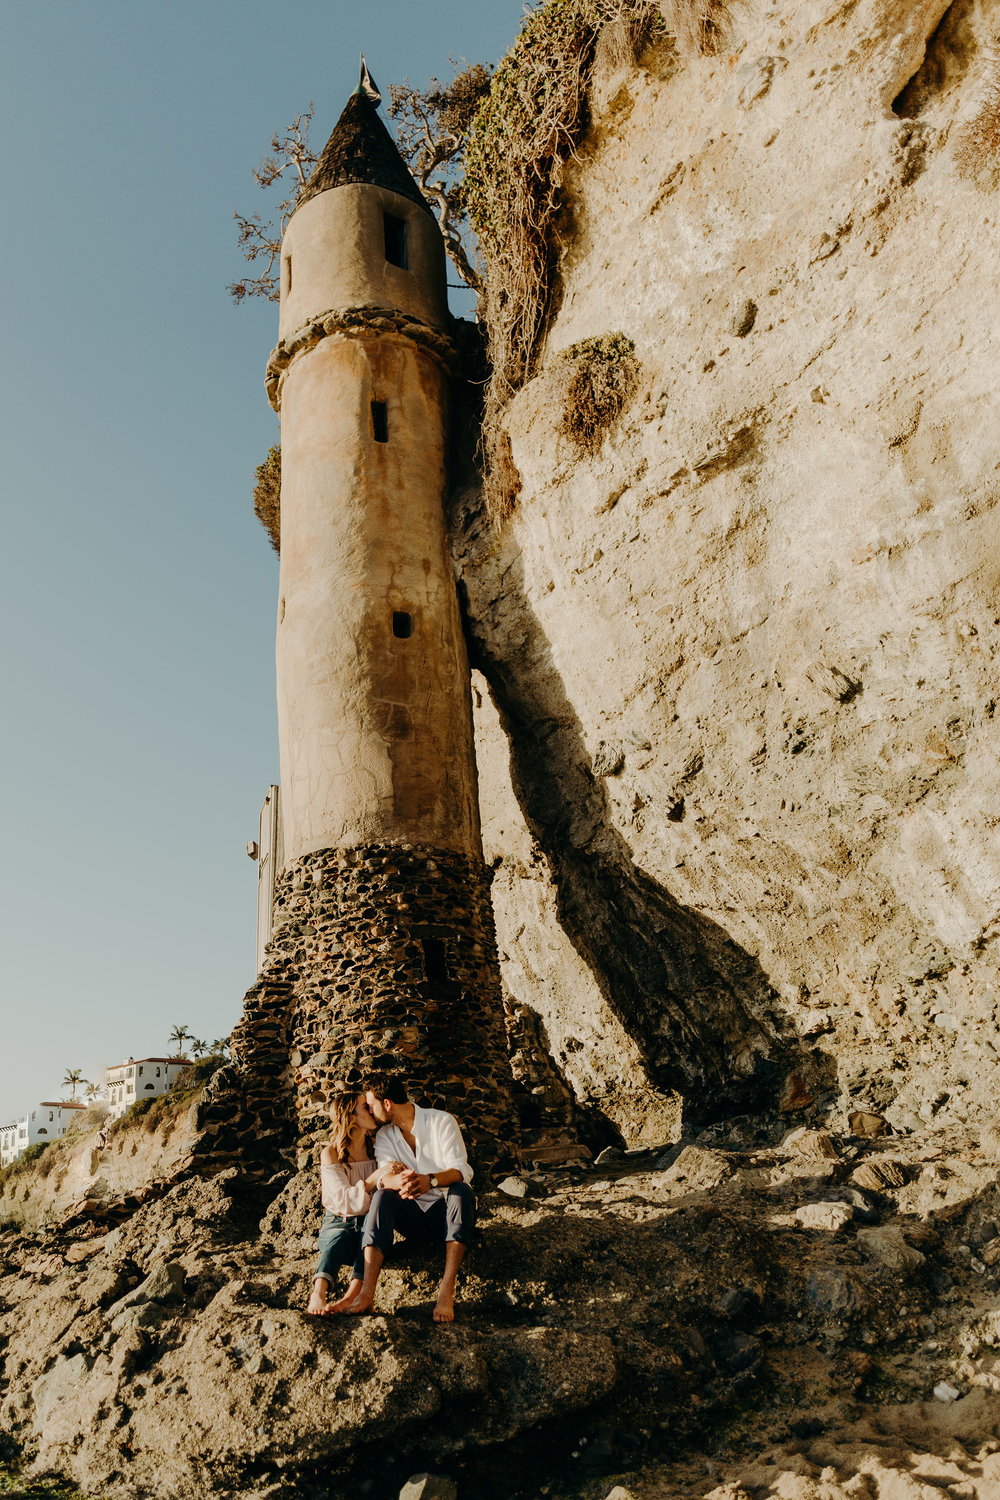 This is Pirate Tower, located at Victoria Beach in Laguna Beach, CA. We visited at sunset for our engagement photo shoot! (Photo cred:  @apartment3photography )